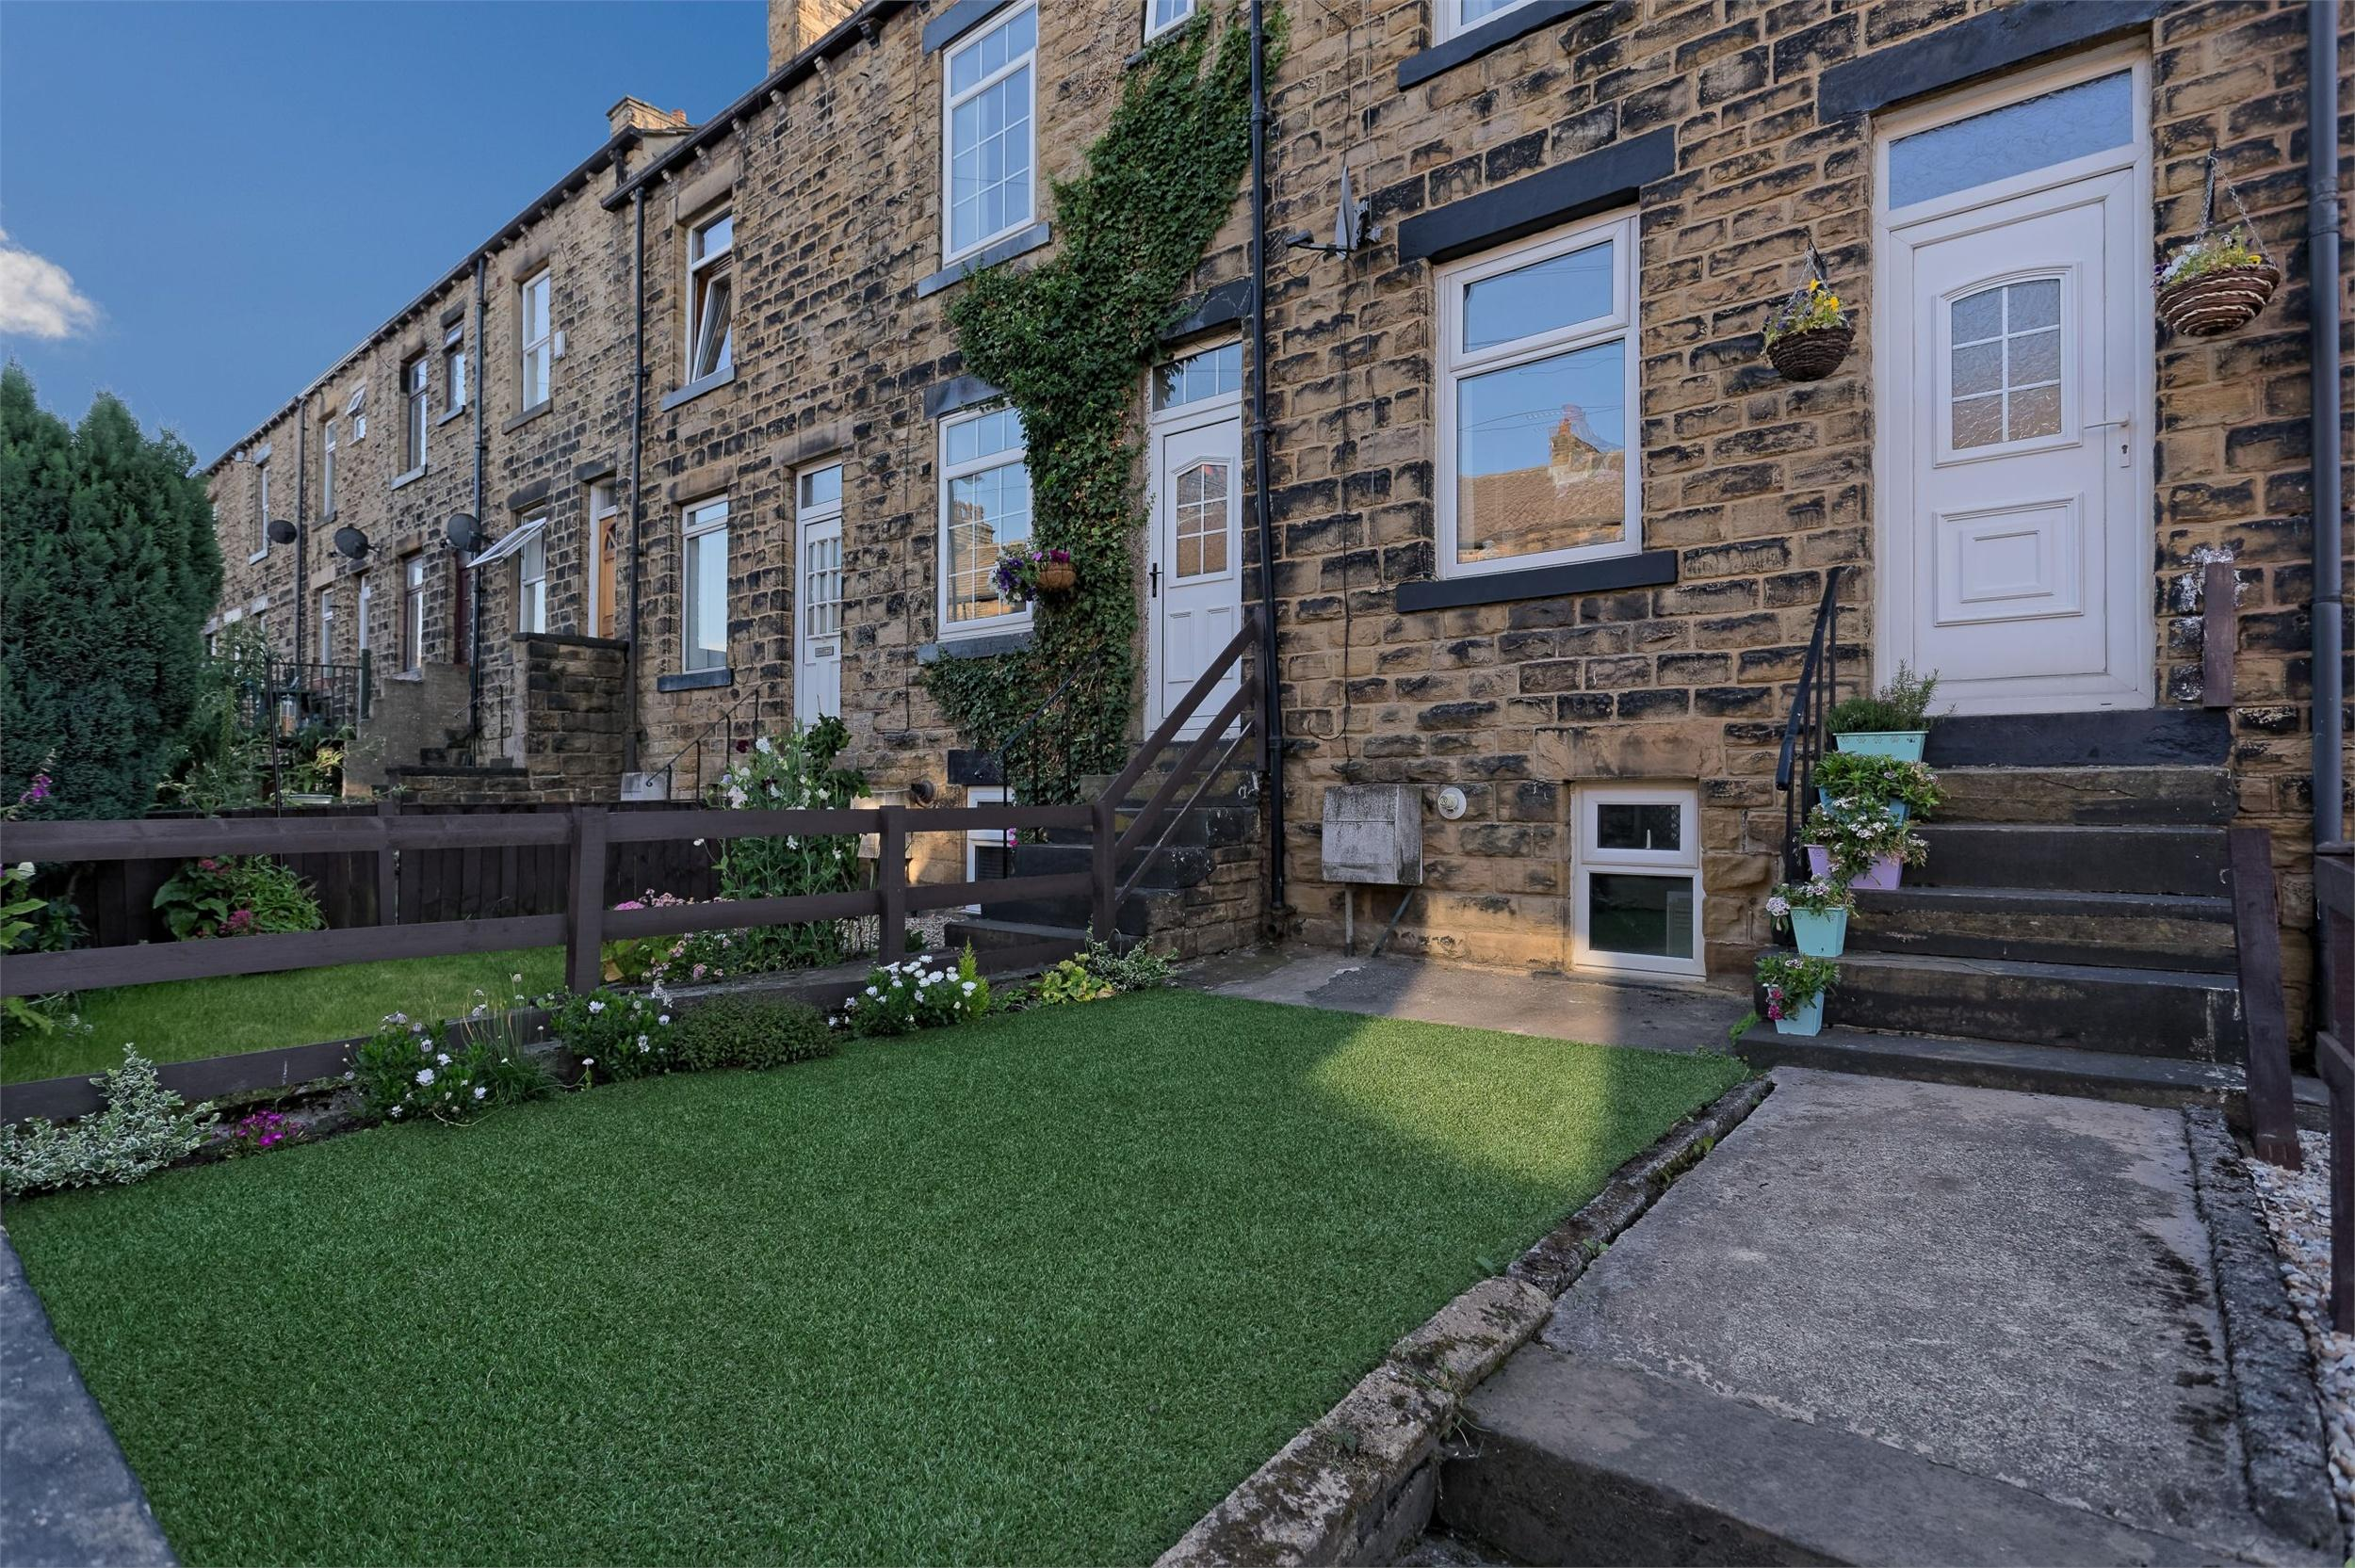 Yorkshire Terrace: Whitegates Bramley 2 Bedroom Terraced House For Sale In